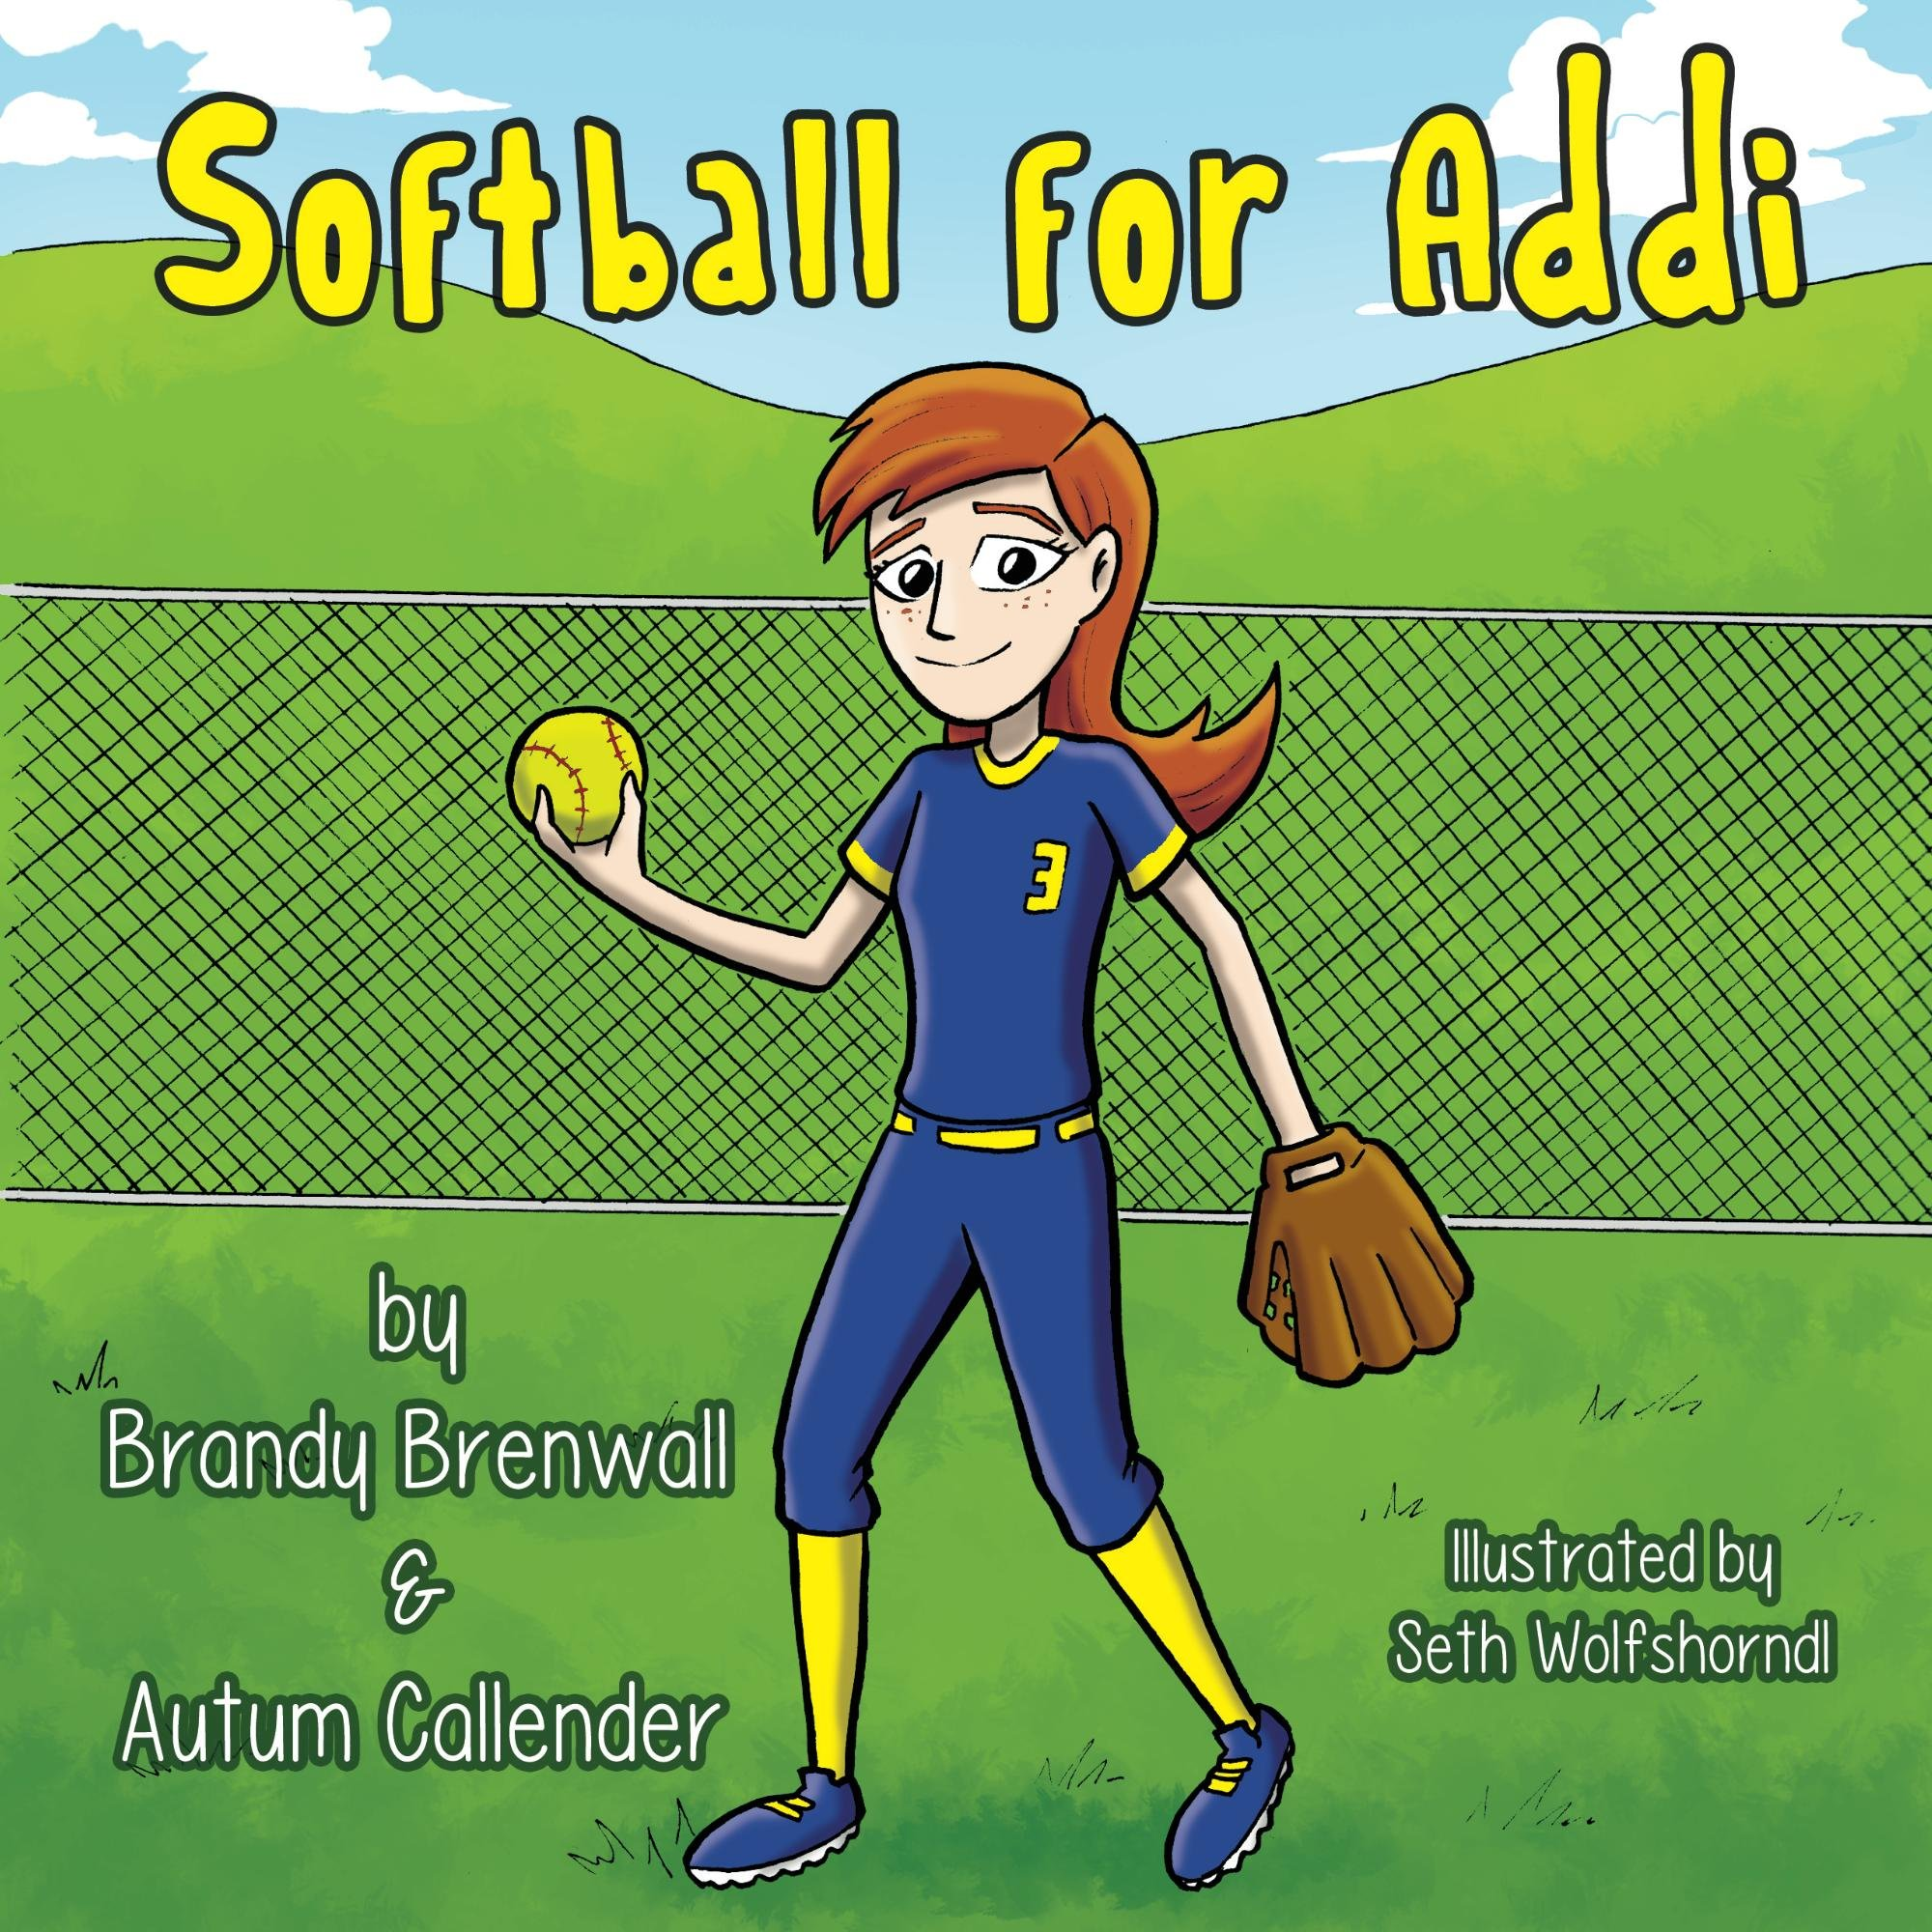 Image OfSoftball For Addi (English Edition)